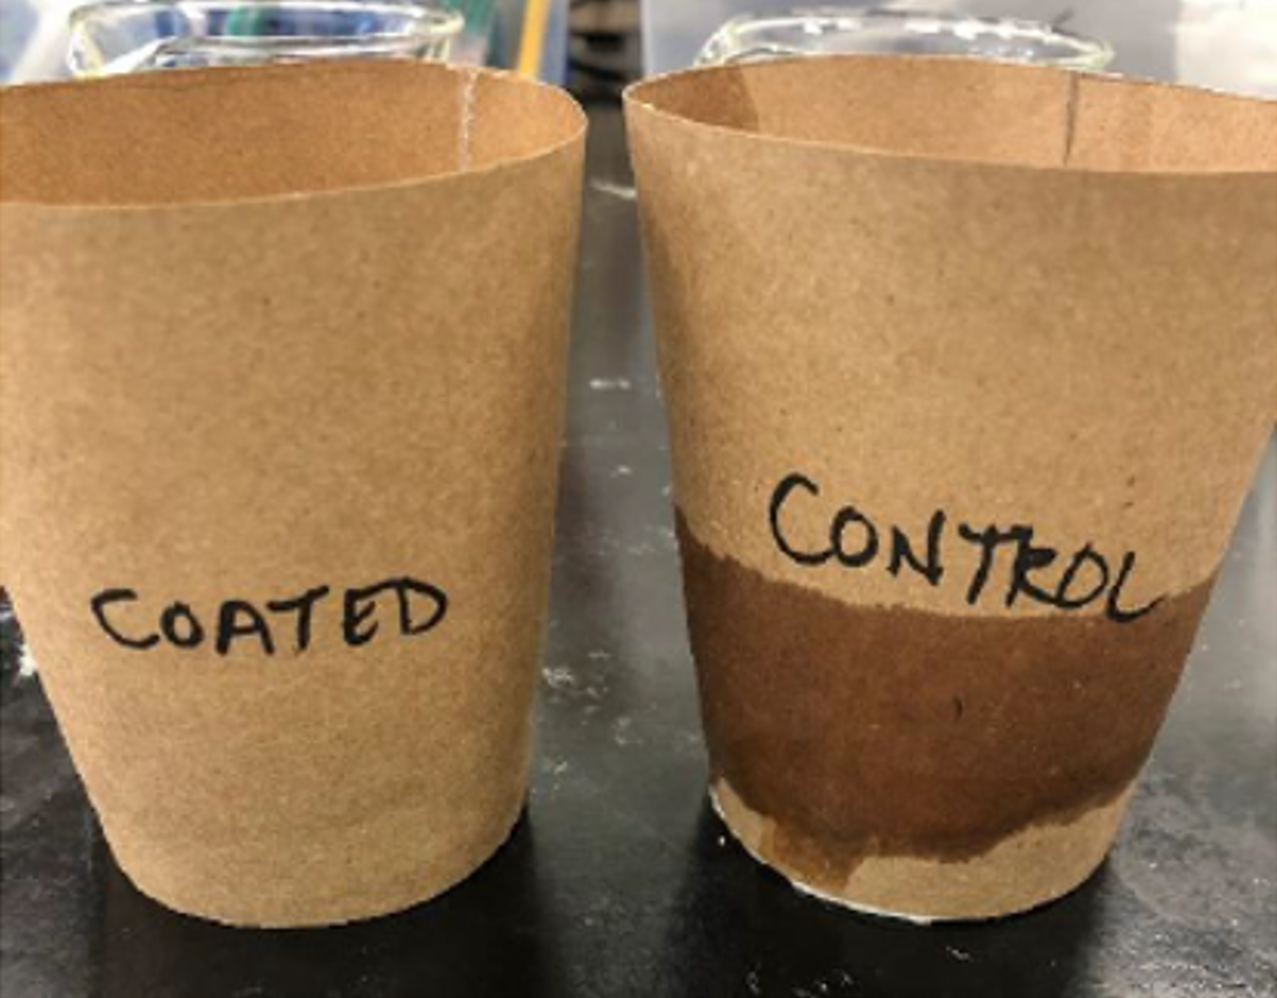 Two light brown paper cups are photographed side by side. The one on the left is labeled with the word